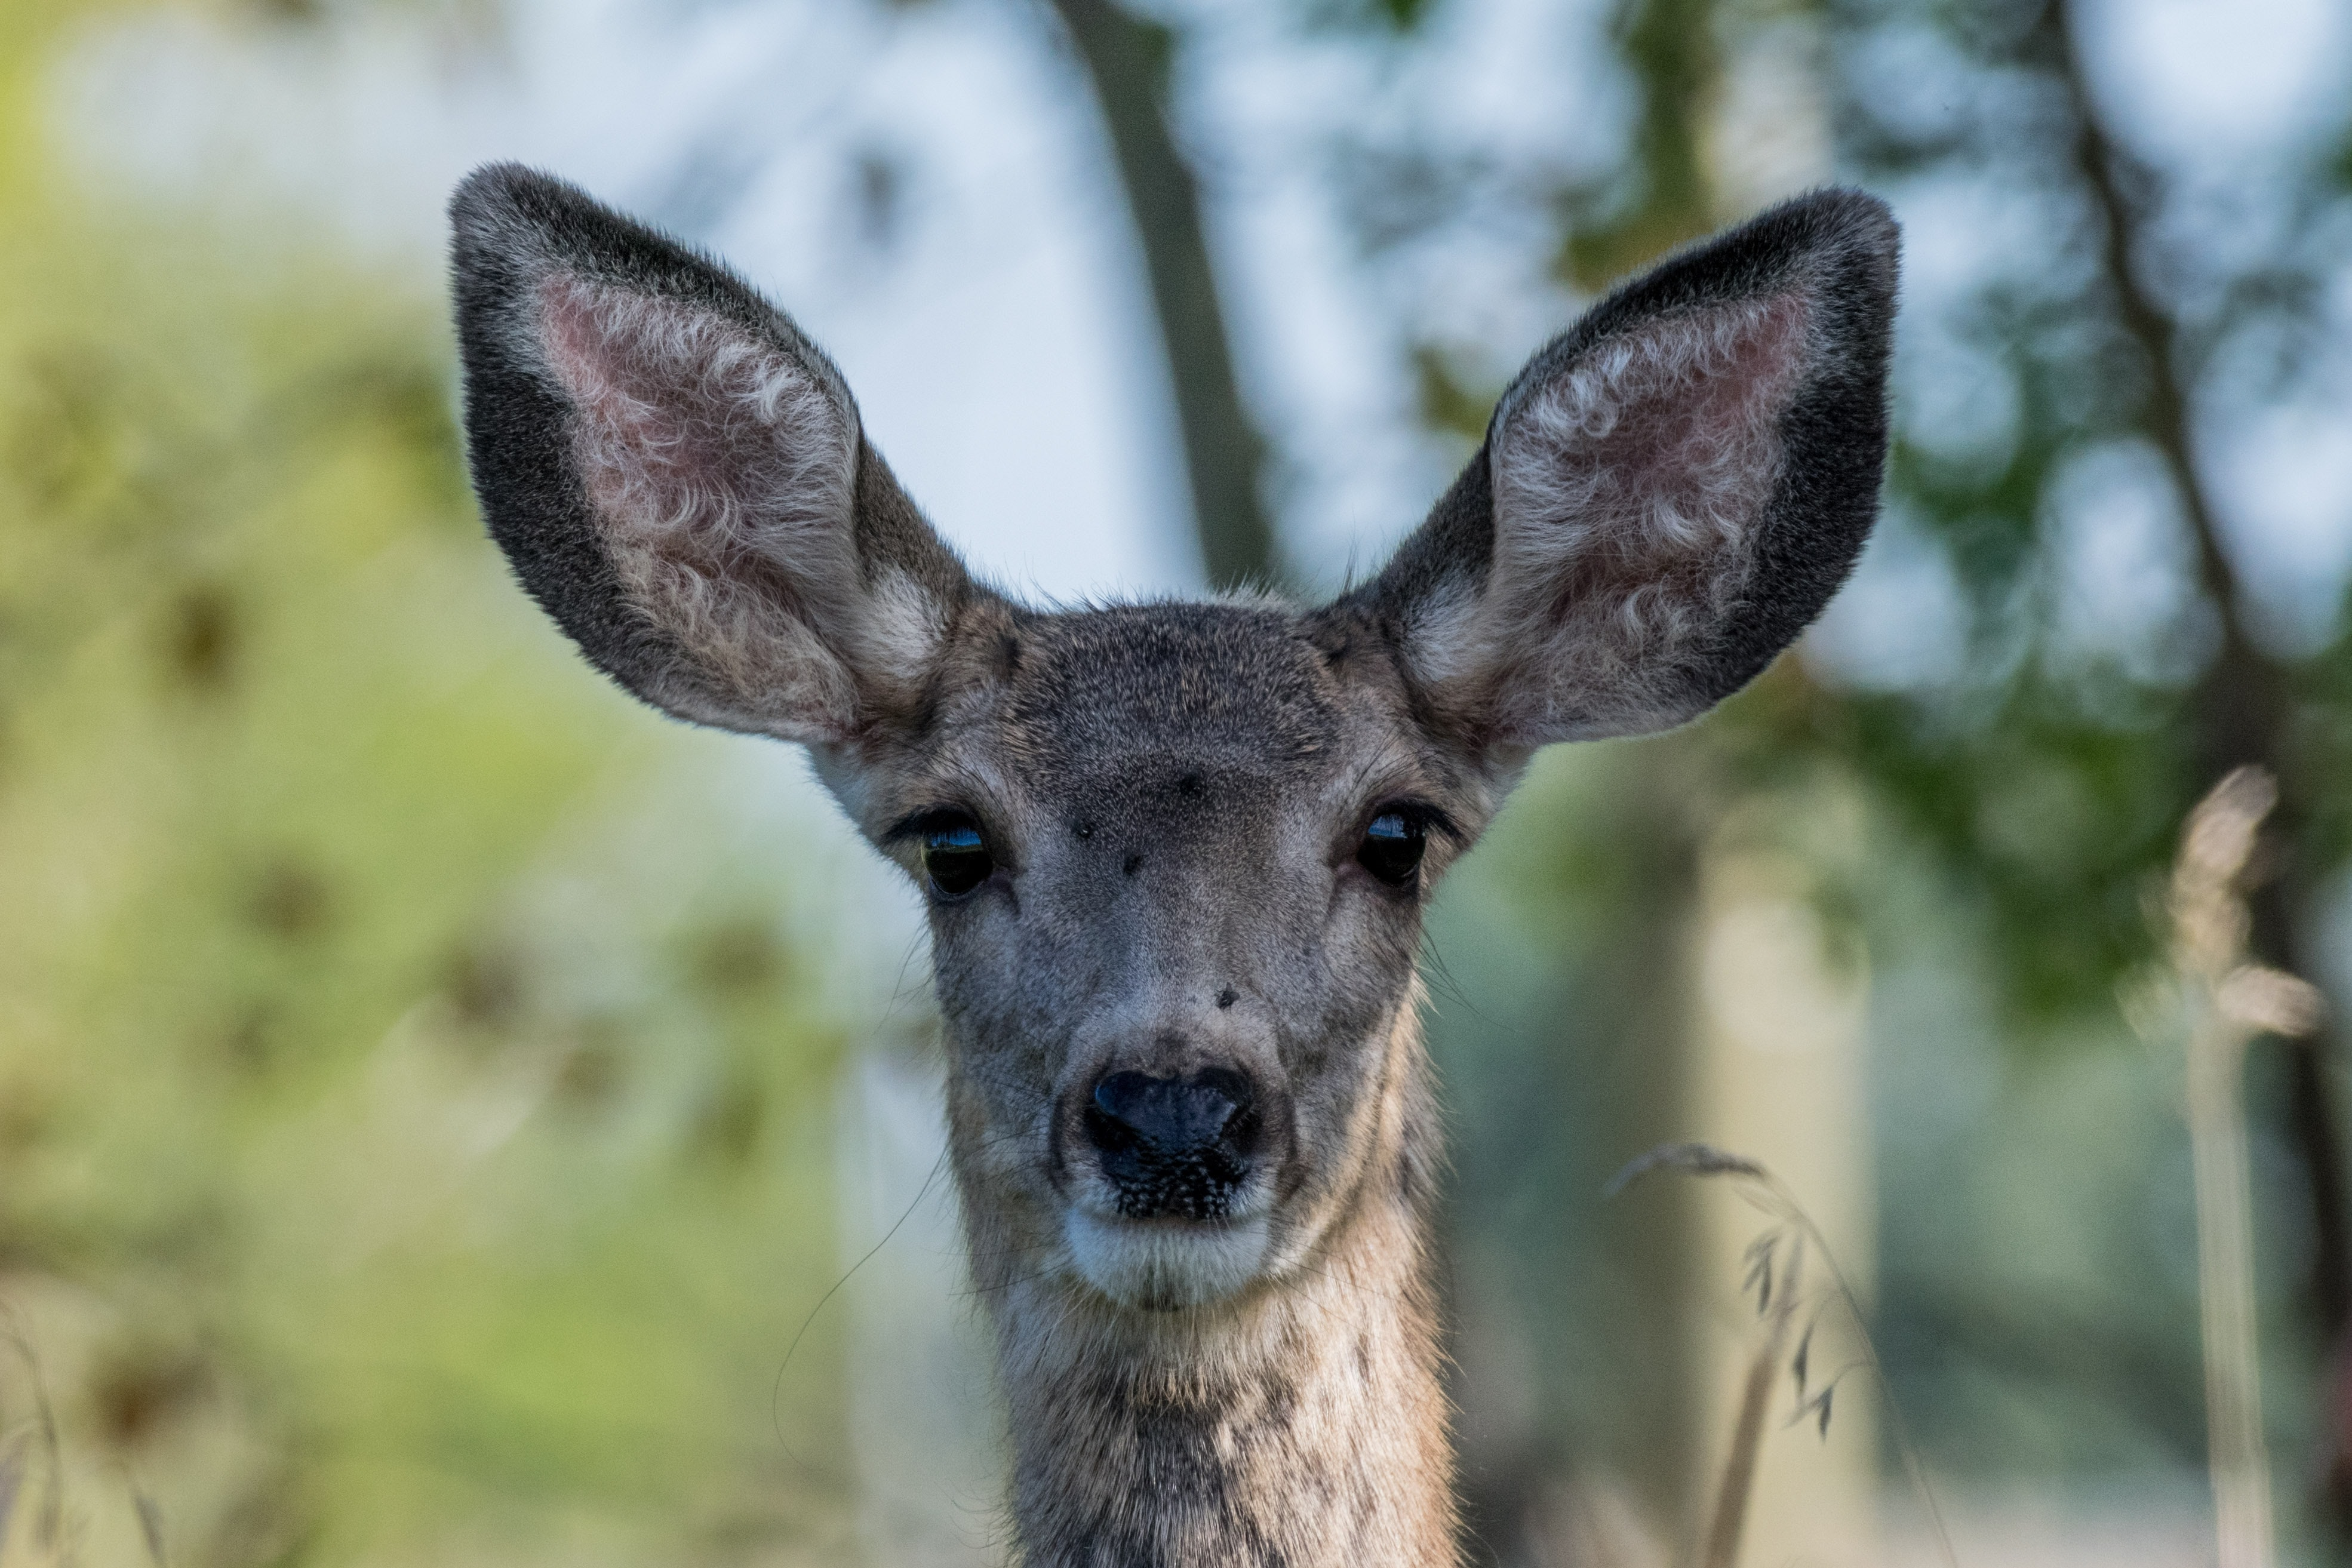 close-up photo of brown deer